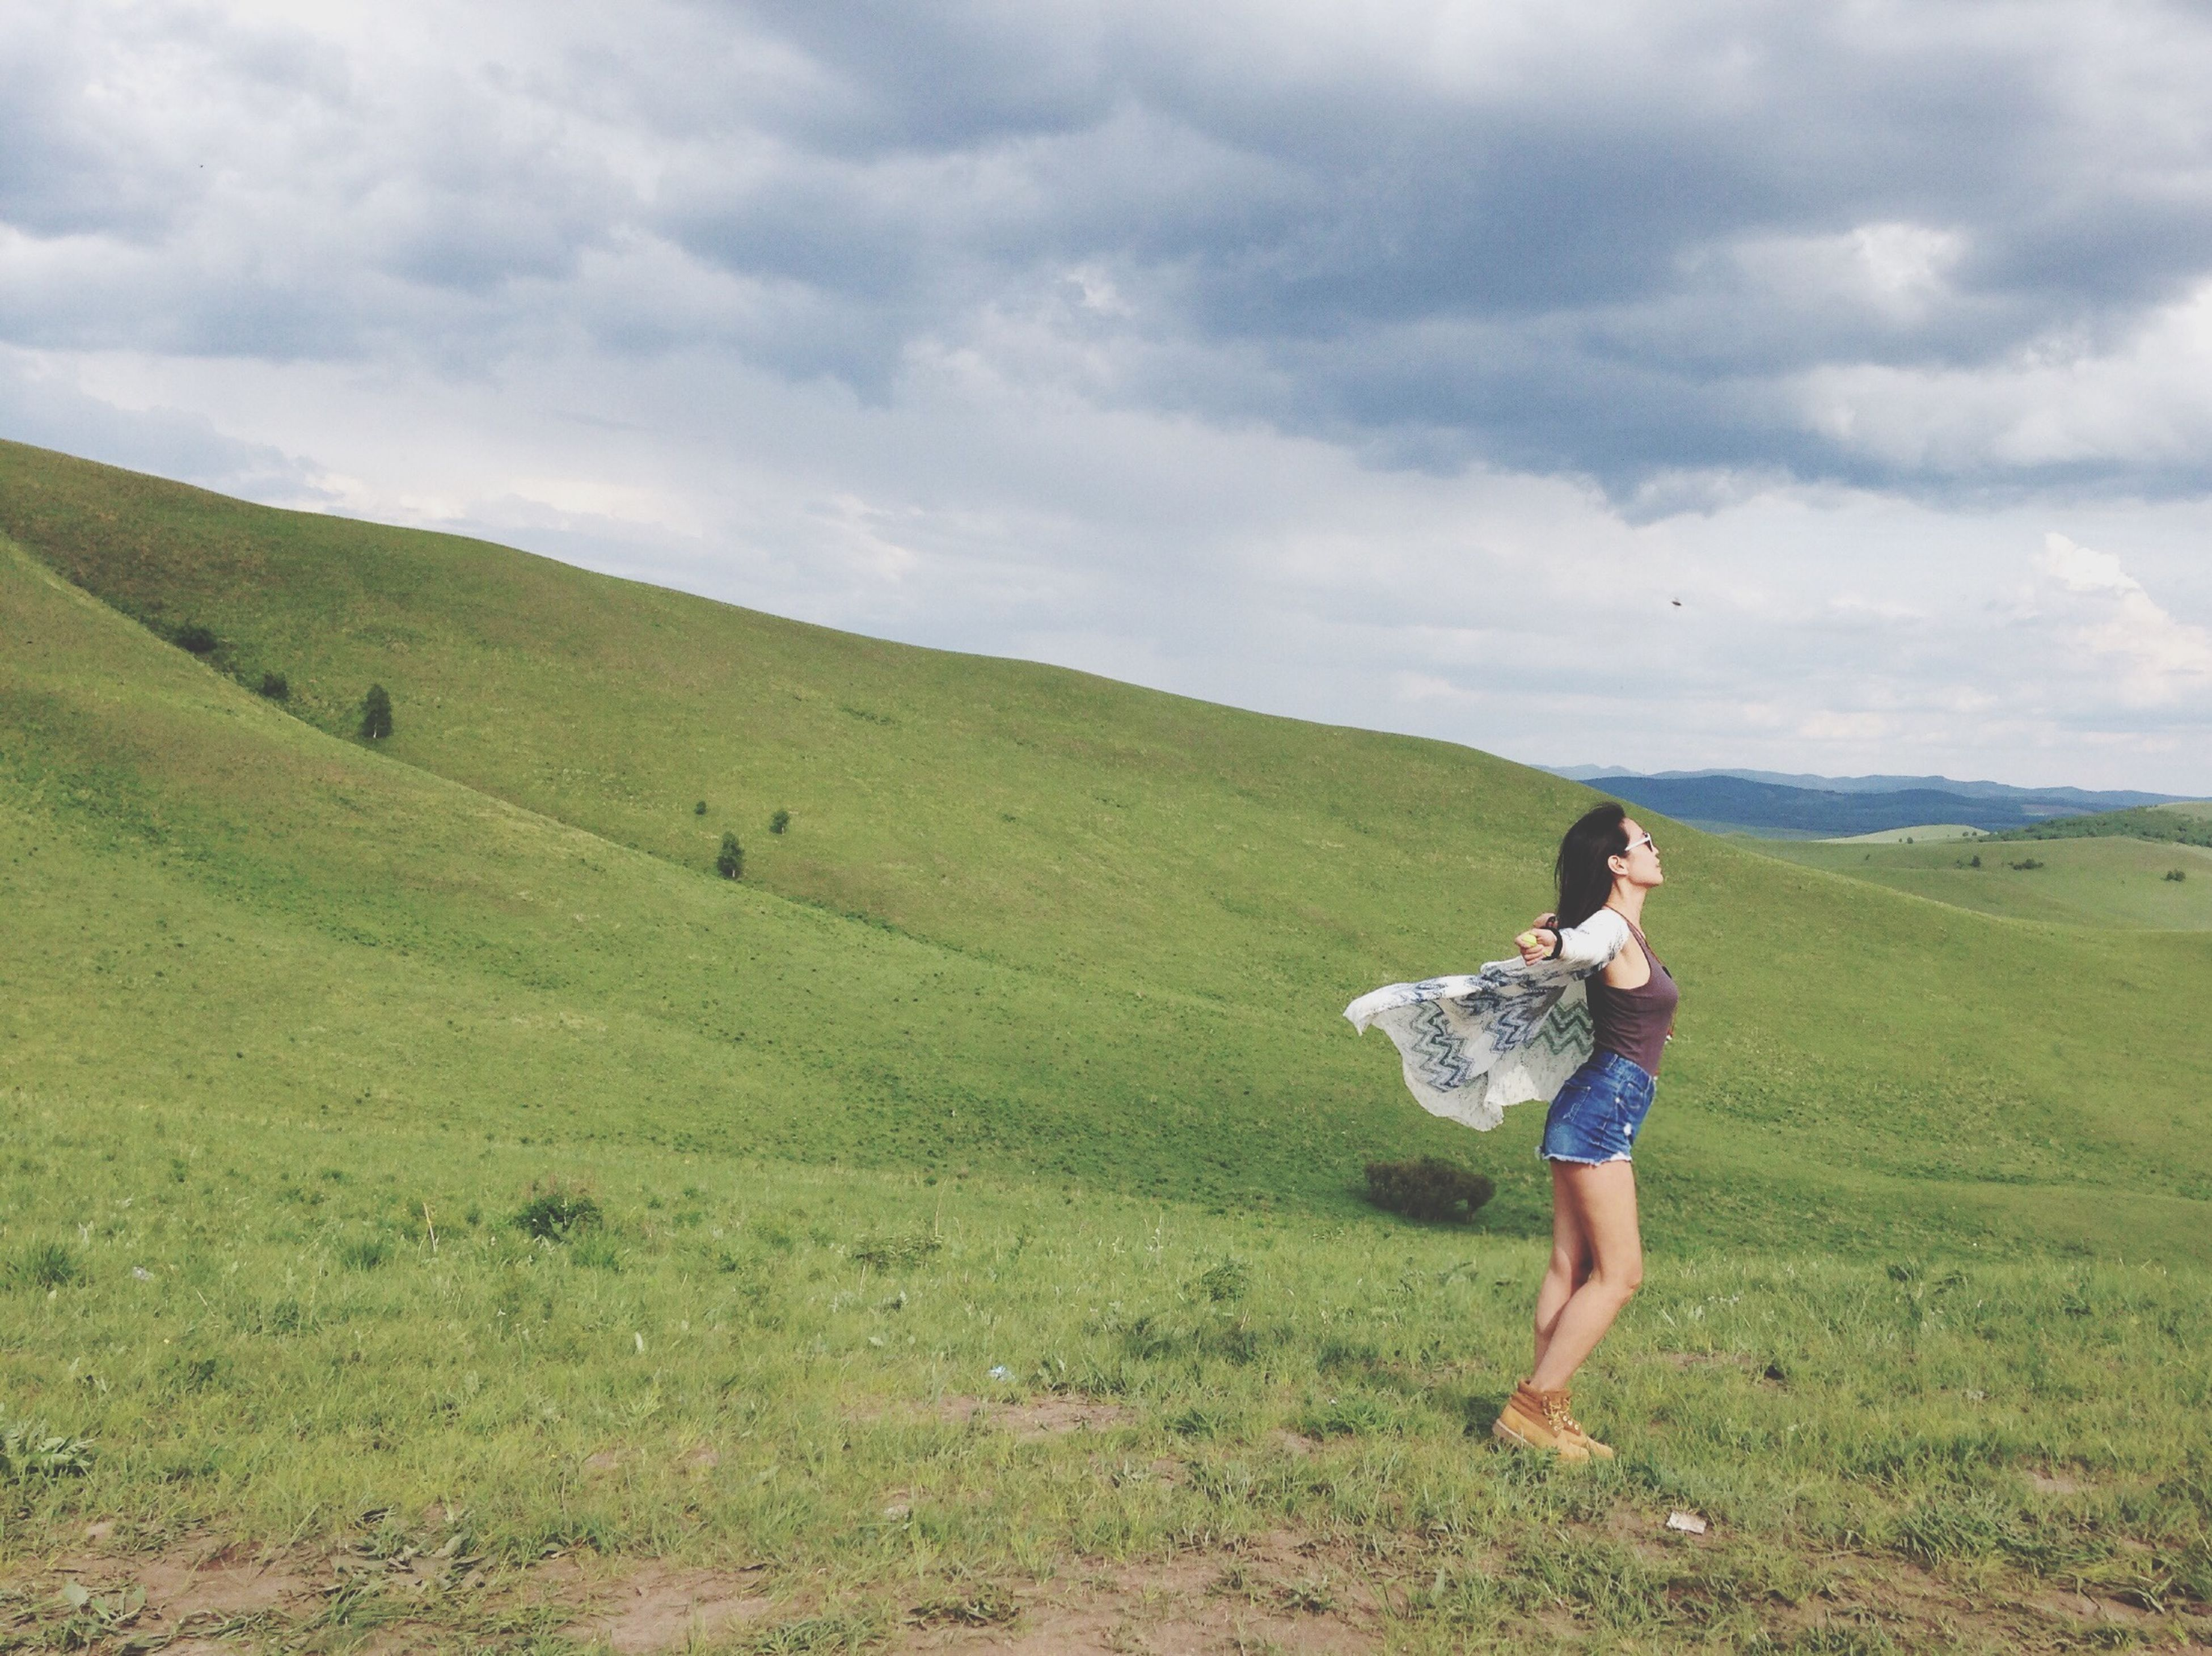 full length, sky, grass, lifestyles, casual clothing, leisure activity, landscape, field, cloud - sky, rear view, person, tranquil scene, nature, cloudy, young adult, tranquility, beauty in nature, standing